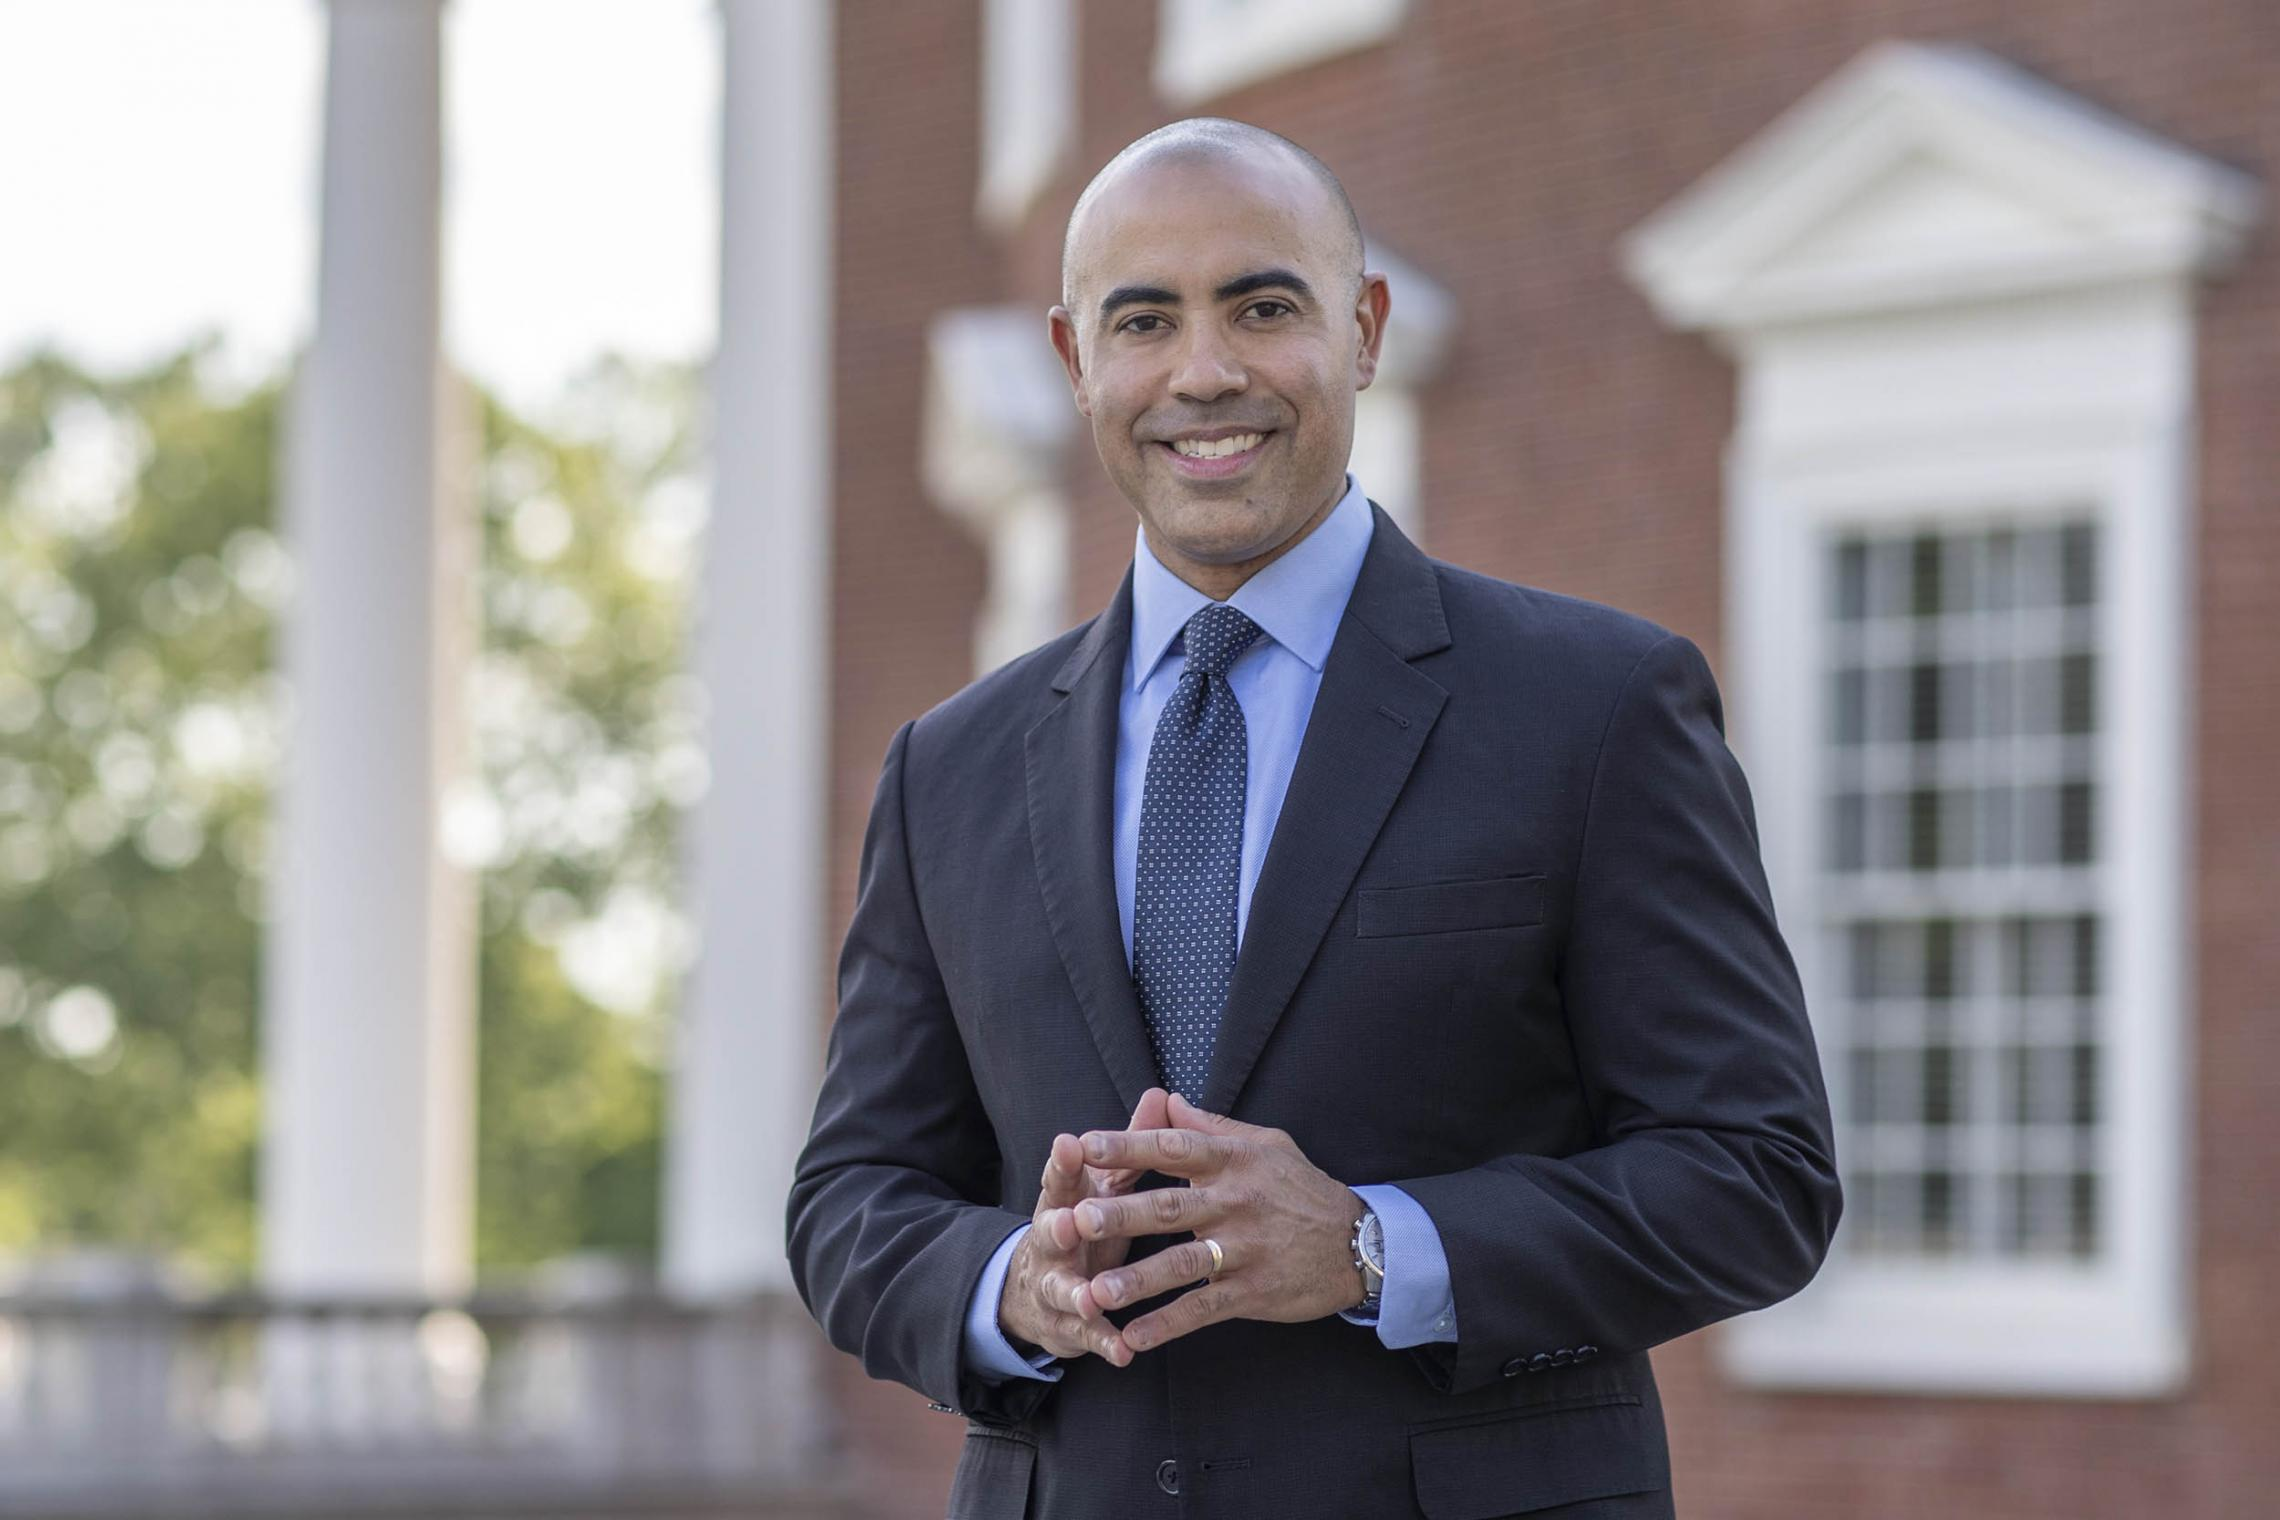 The University of Virginia today announced the appIan H. Solomon, CEO of SolomonGLobal LLC, is an educator, policymaker, diplomat and businessman with more than 20 years of experience in more than 40 countries.